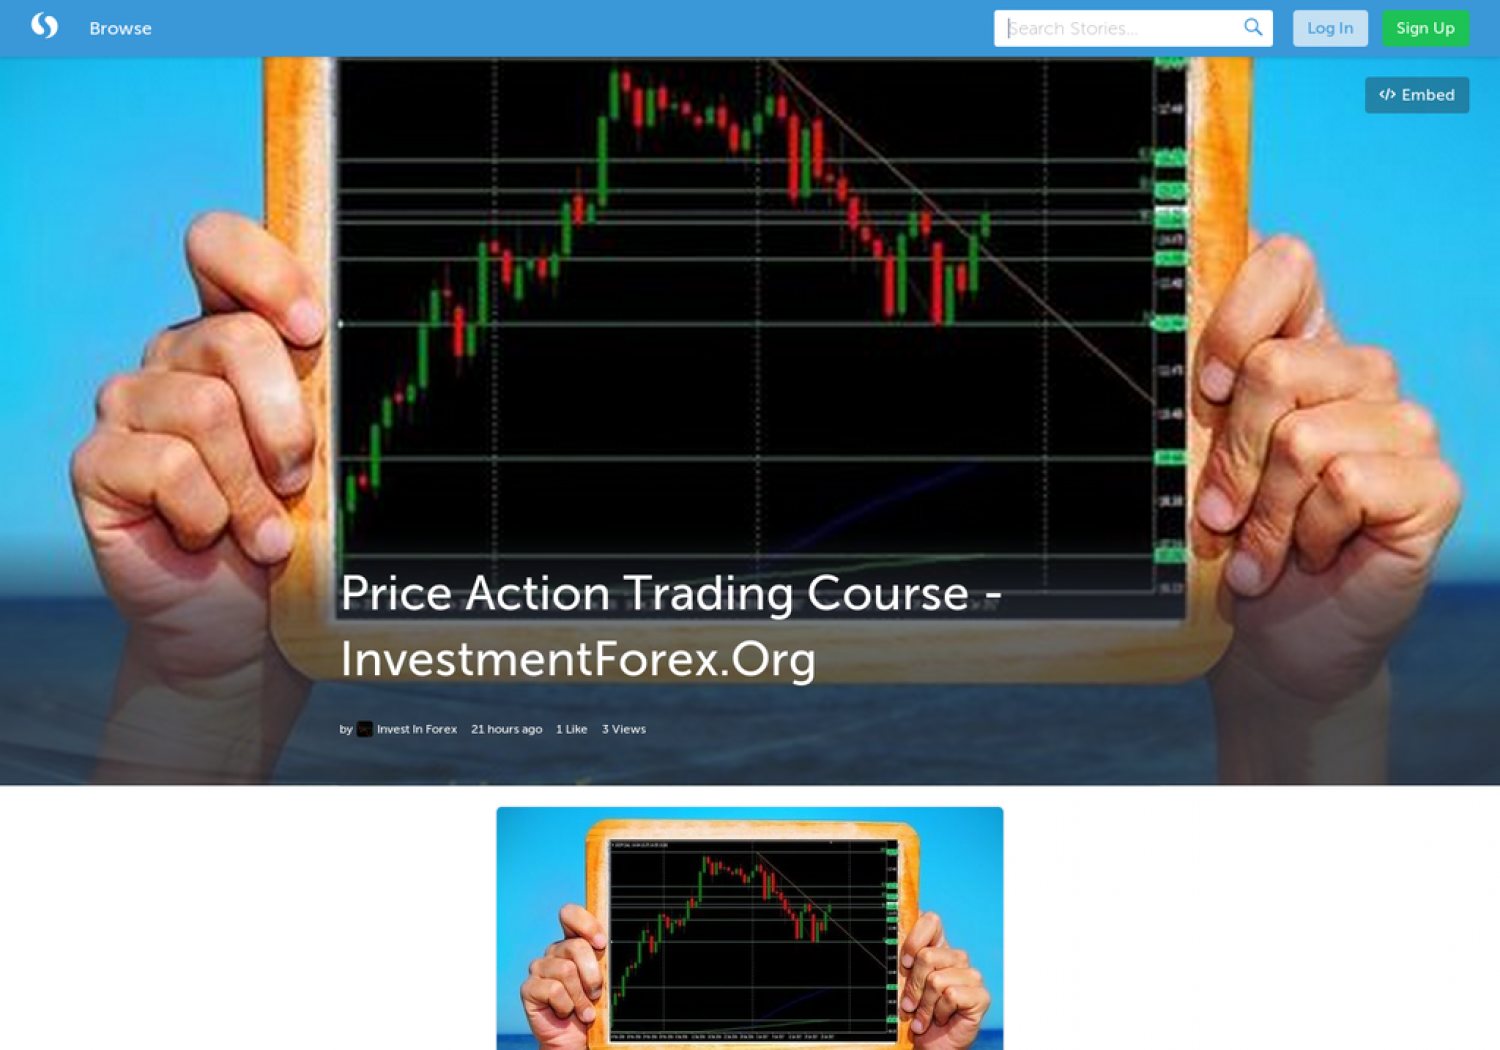 Price Action Trading Course - InvestmentForex.Org Infographic